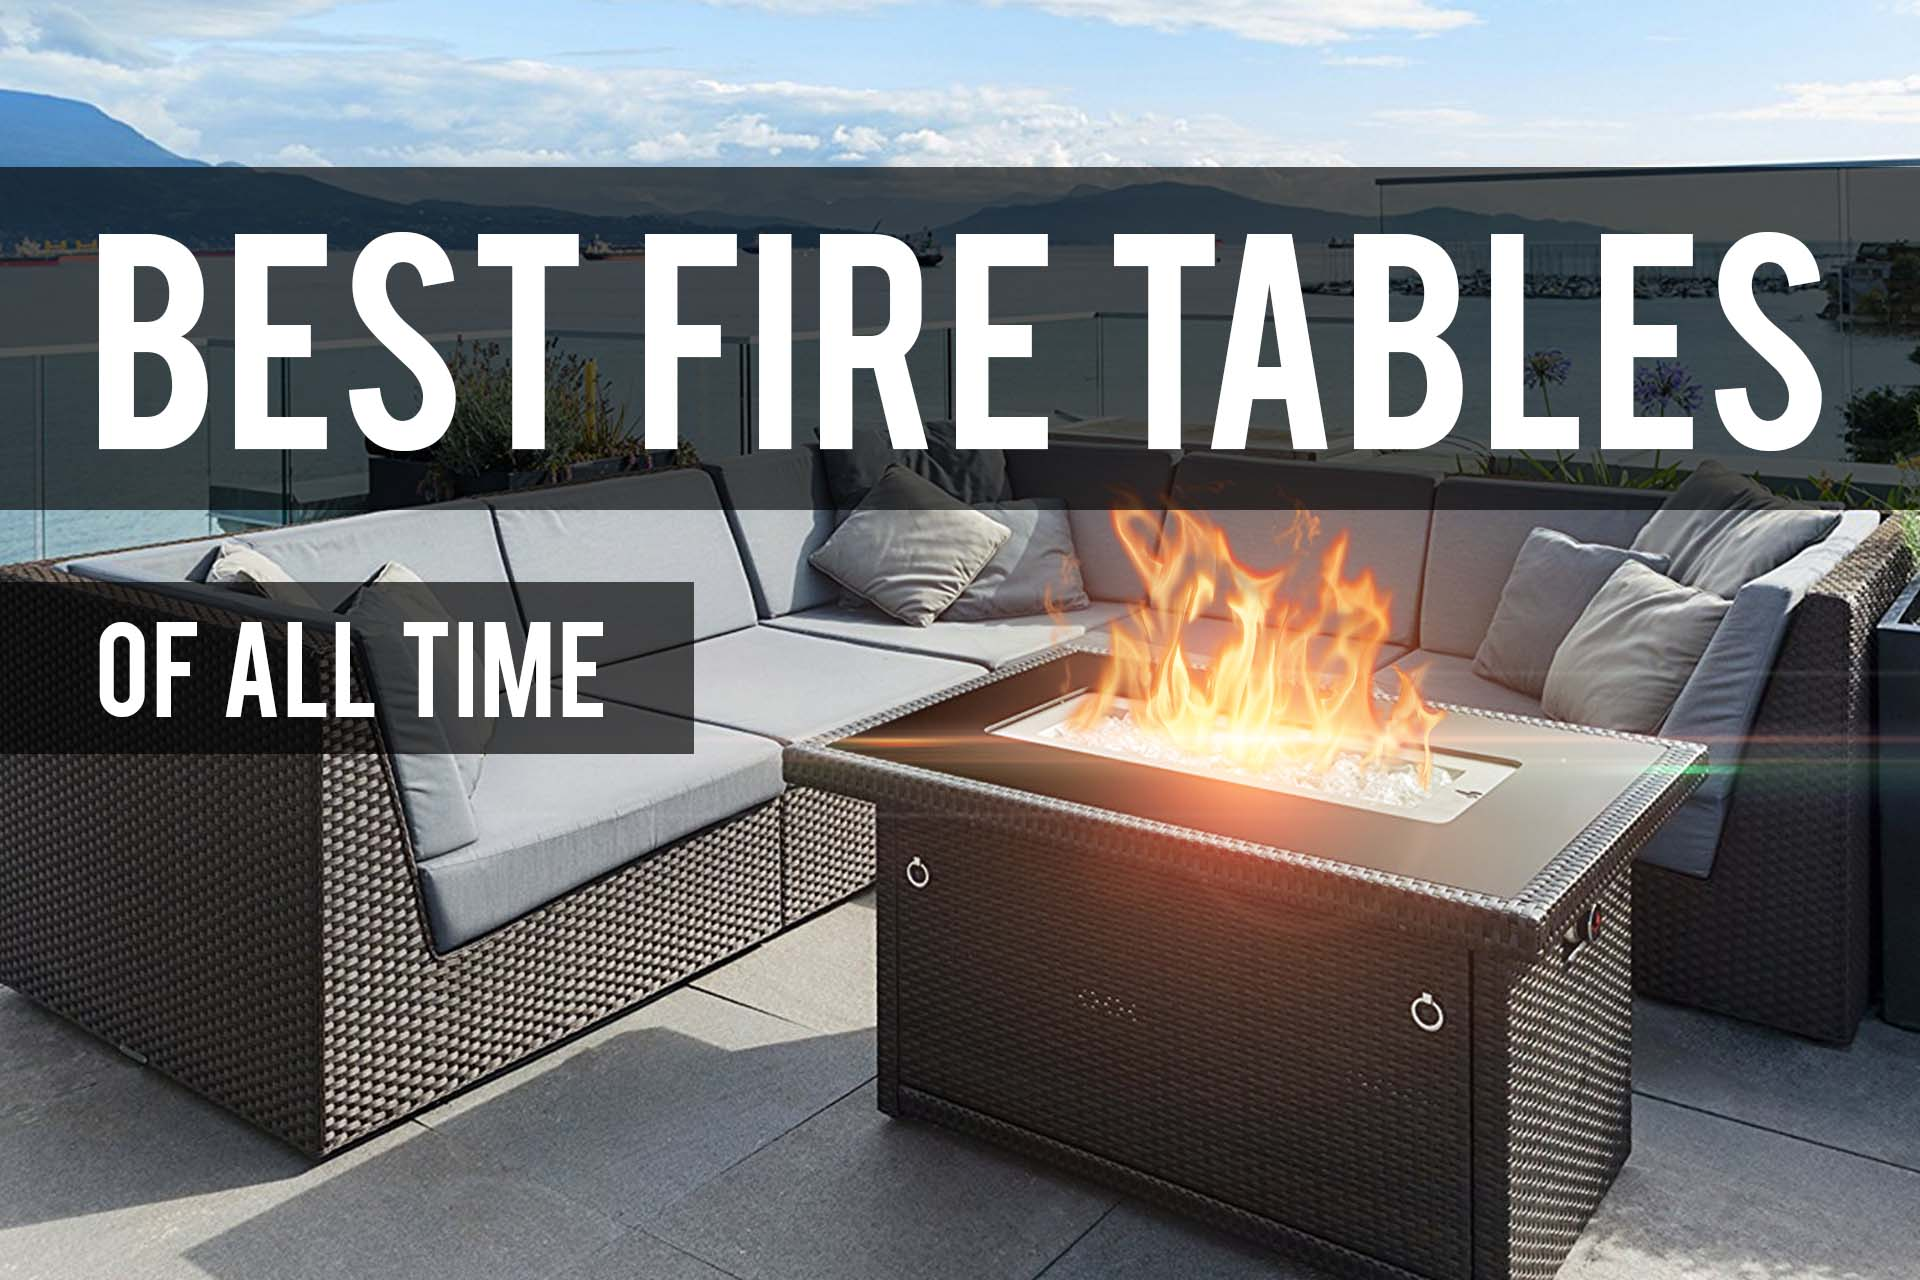 Wondrous Best Fire Tables 2019 Reviews The Patio Pro Download Free Architecture Designs Grimeyleaguecom